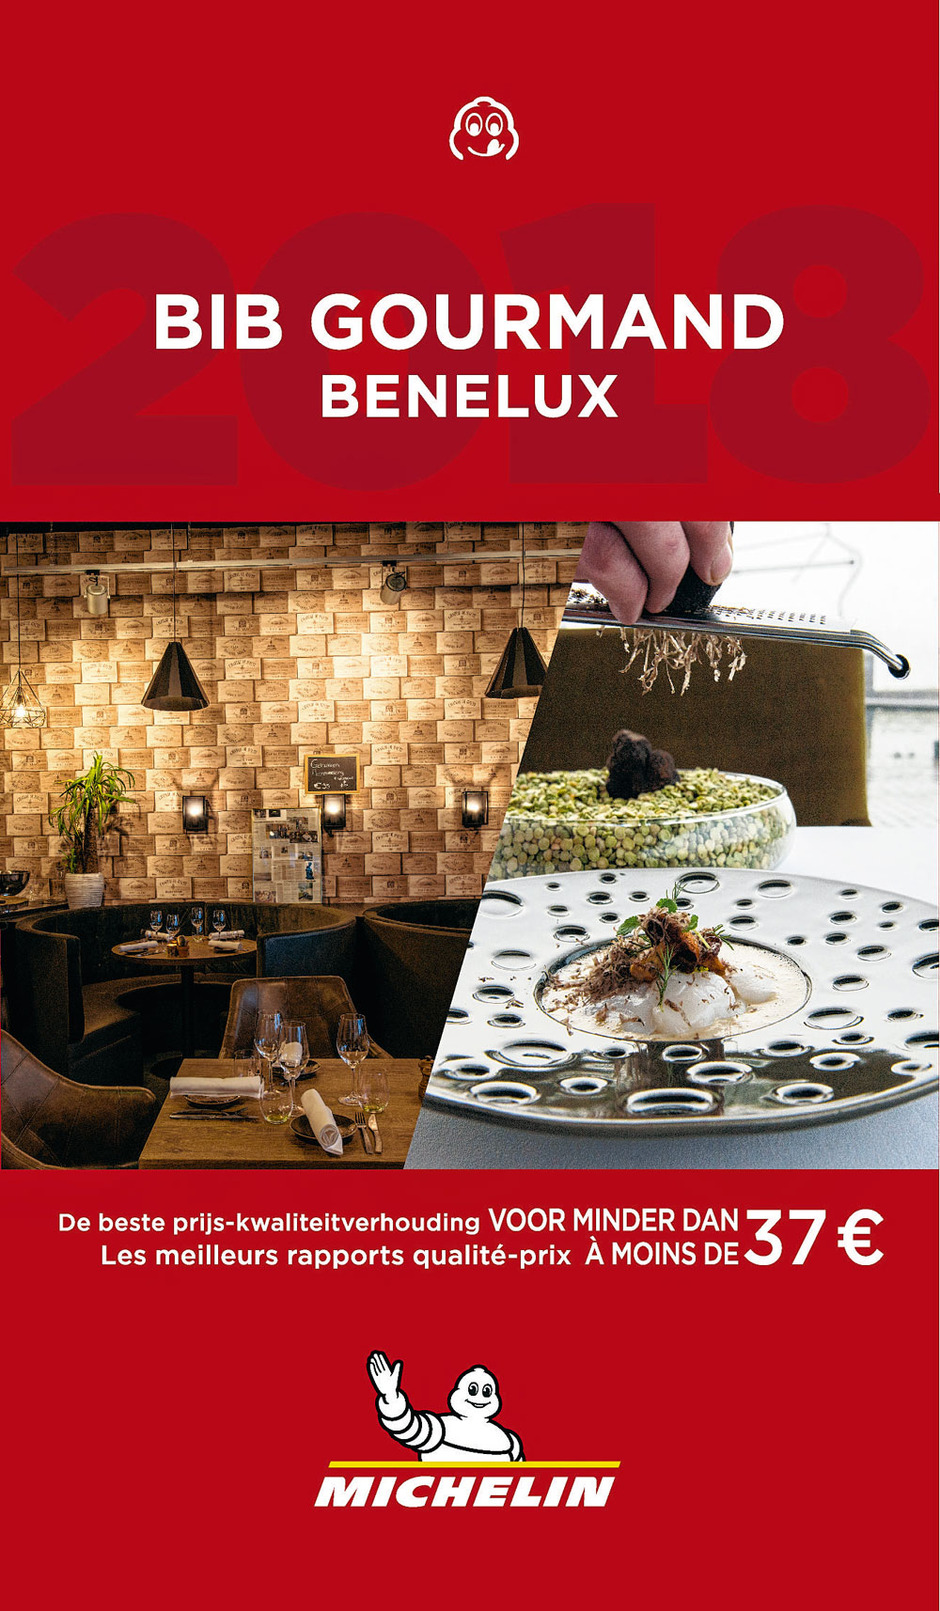 Les Bib gourmands Benelux 2018